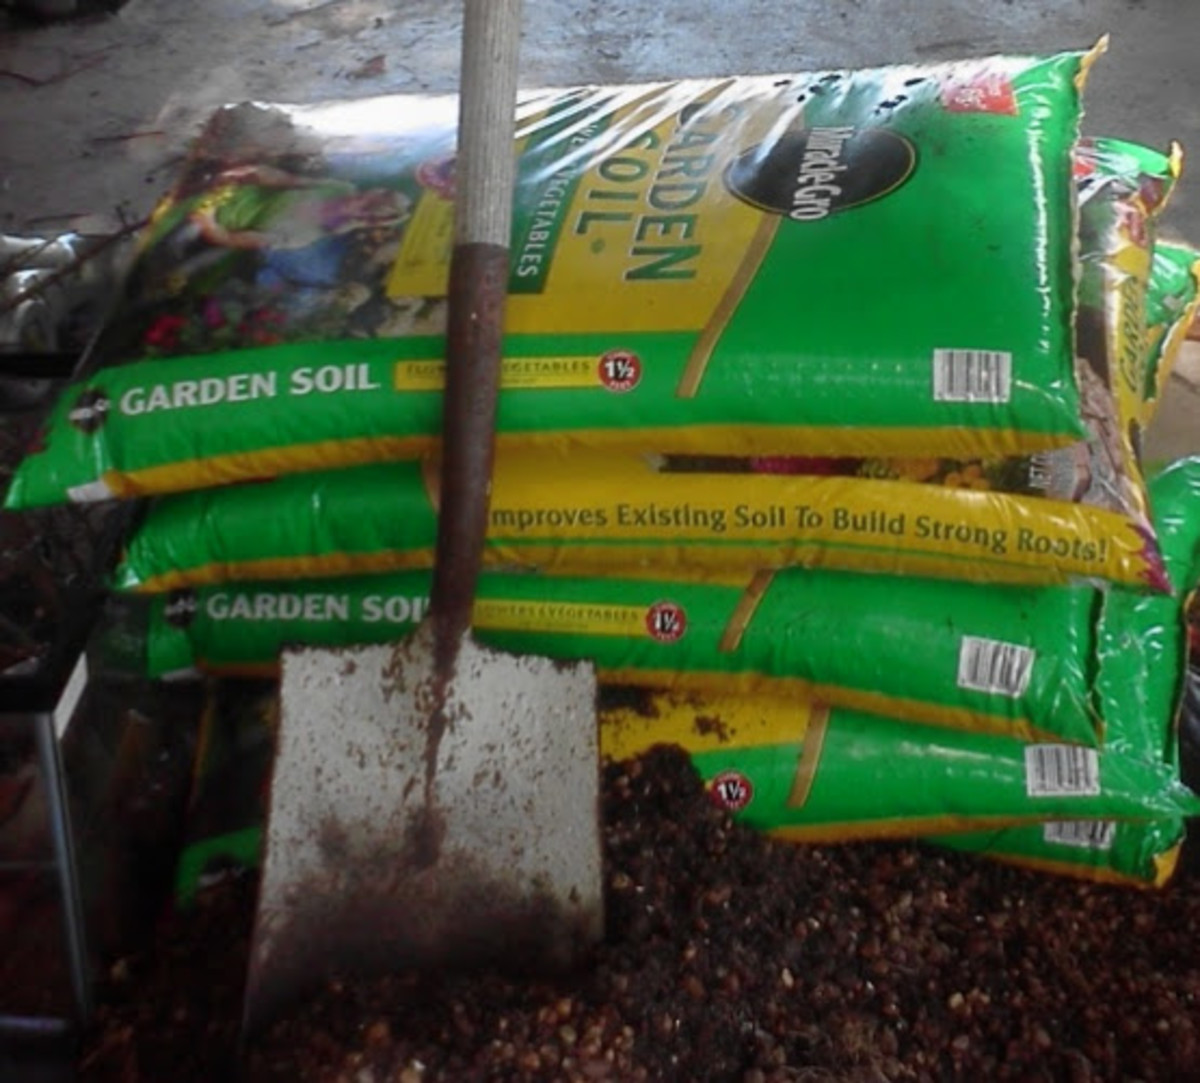 Alternatively you can use potting mix or other convenient soils that can be potted for starting your crop.